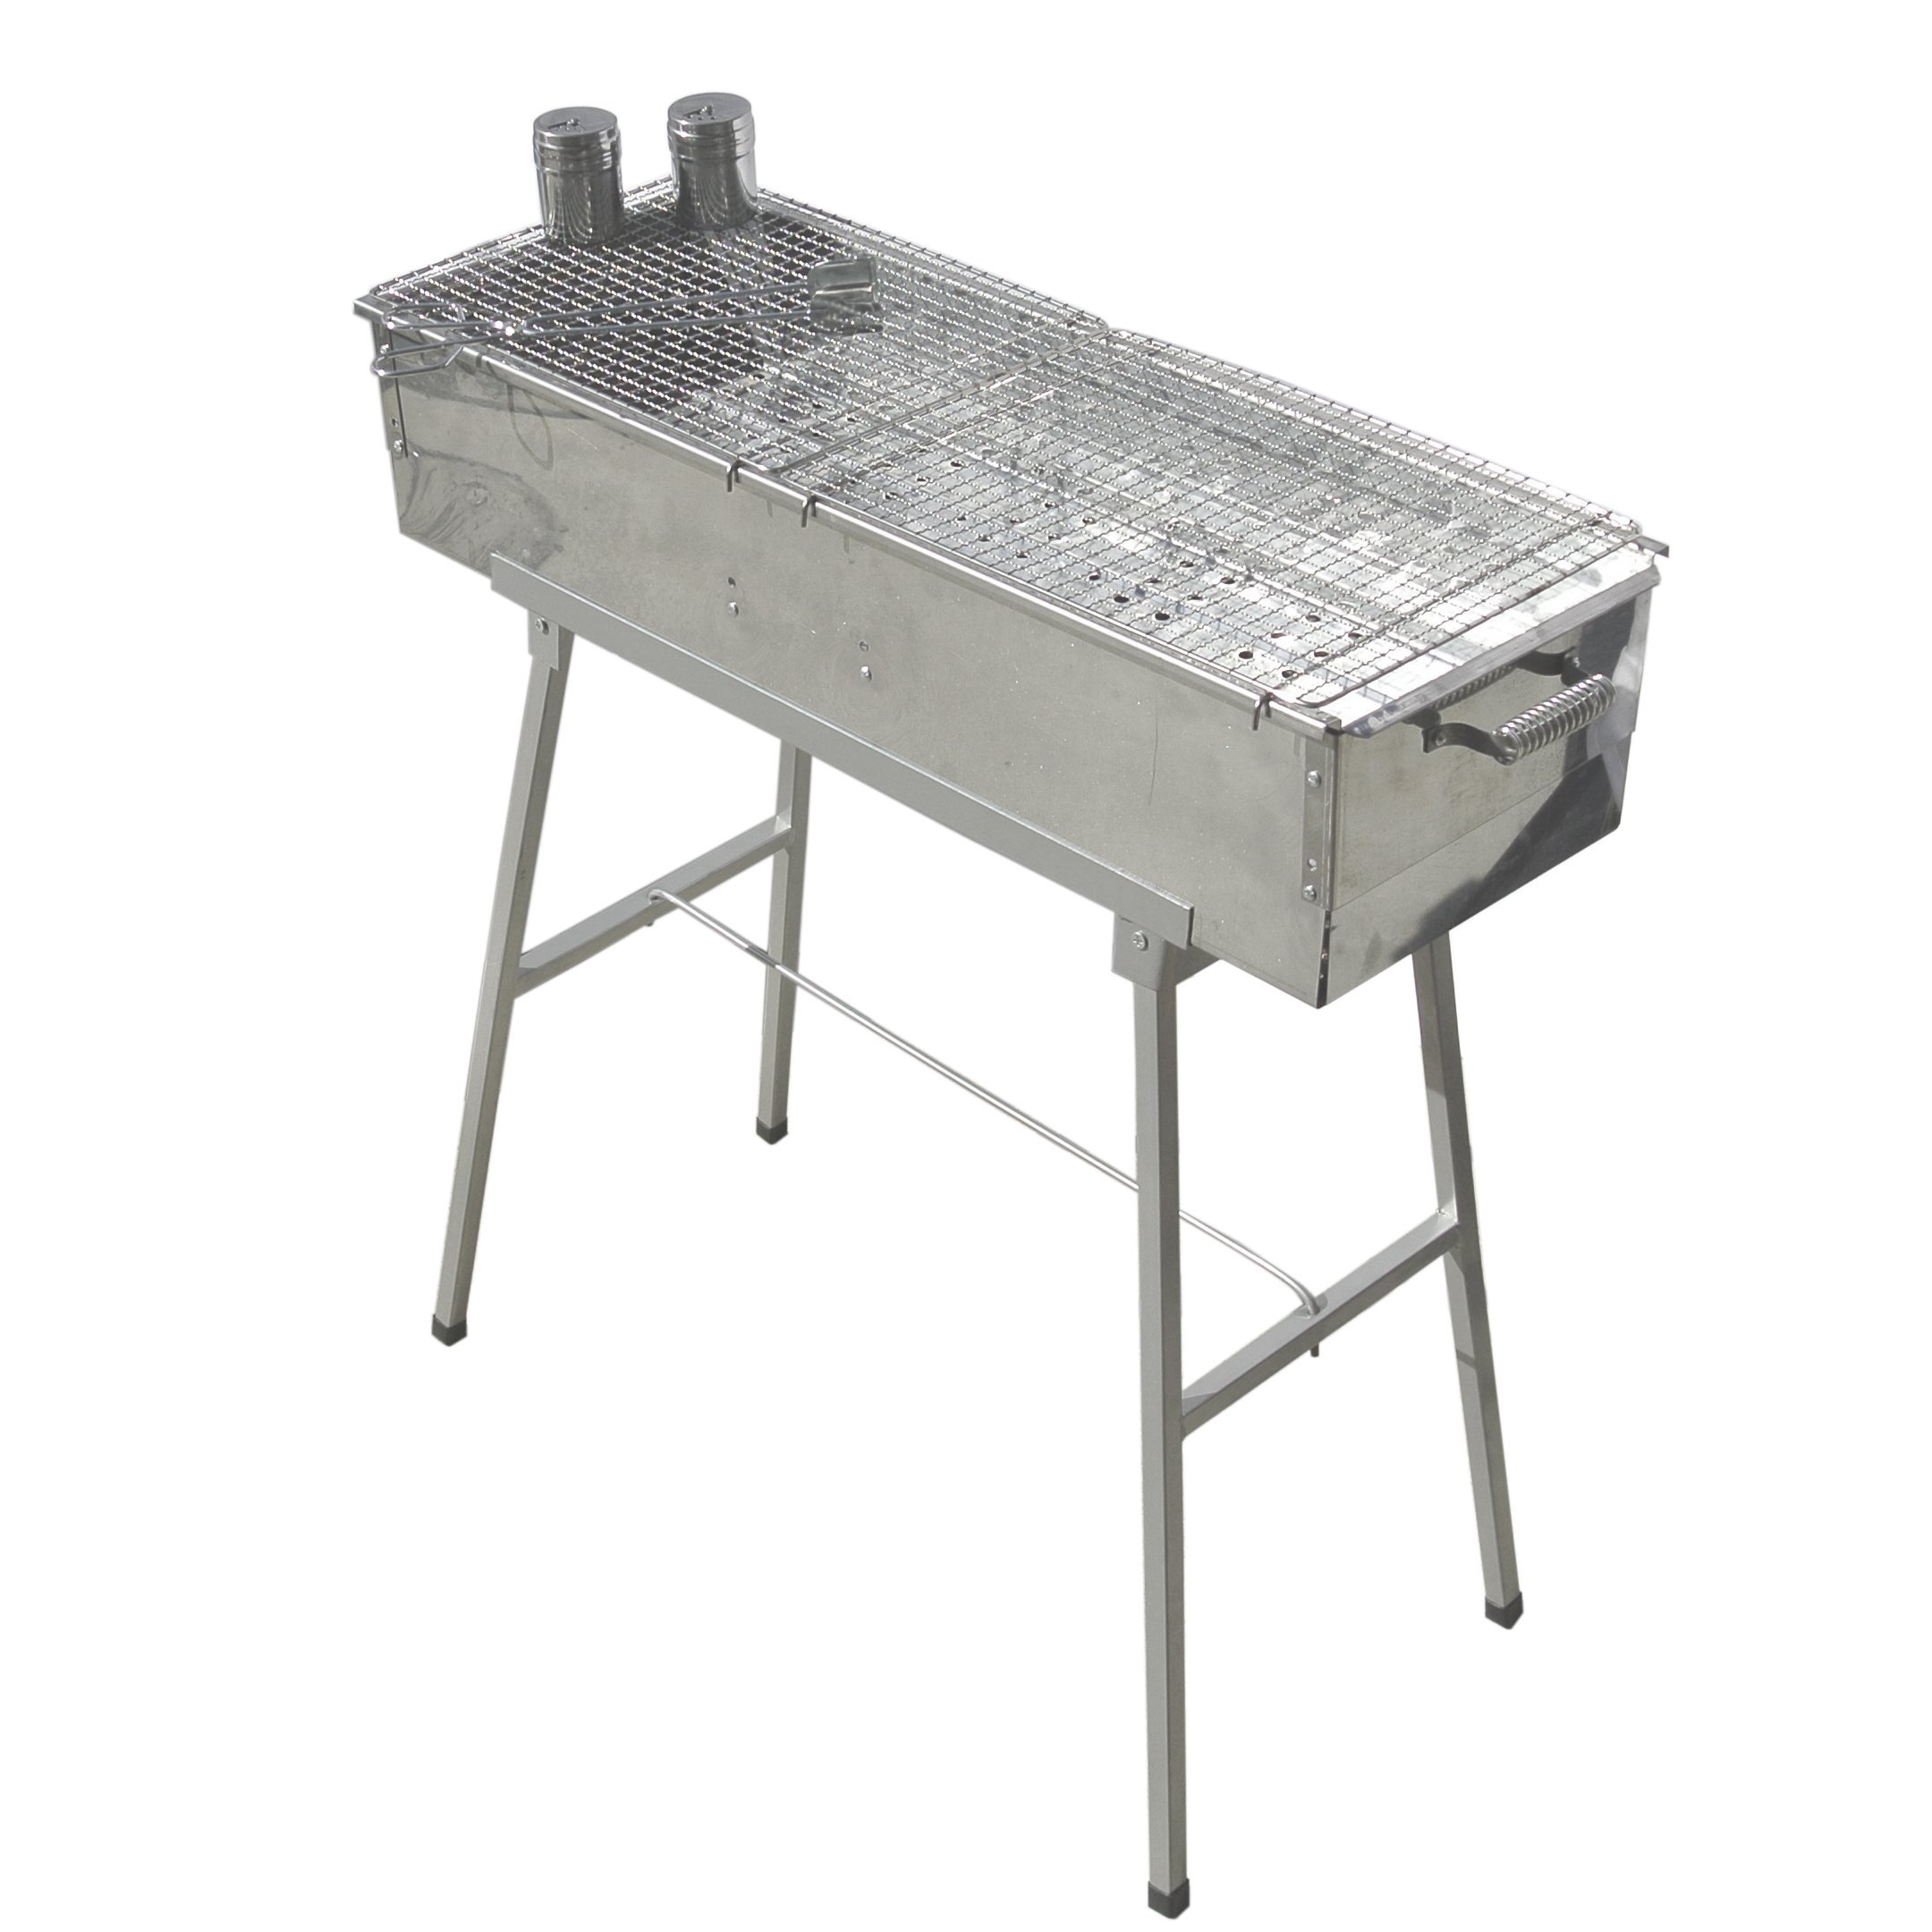 Party Griller Yakitori Grill 32'' x 11'' - Portable Stainless Steel Charcoal Barbecue Grill w/ 2x Stainless Steel Mesh Grate. BBQ Kebab, Satay. Makes Juicy Shish Kebob, Shashlik, Spiedini on the Skewer by Party Griller